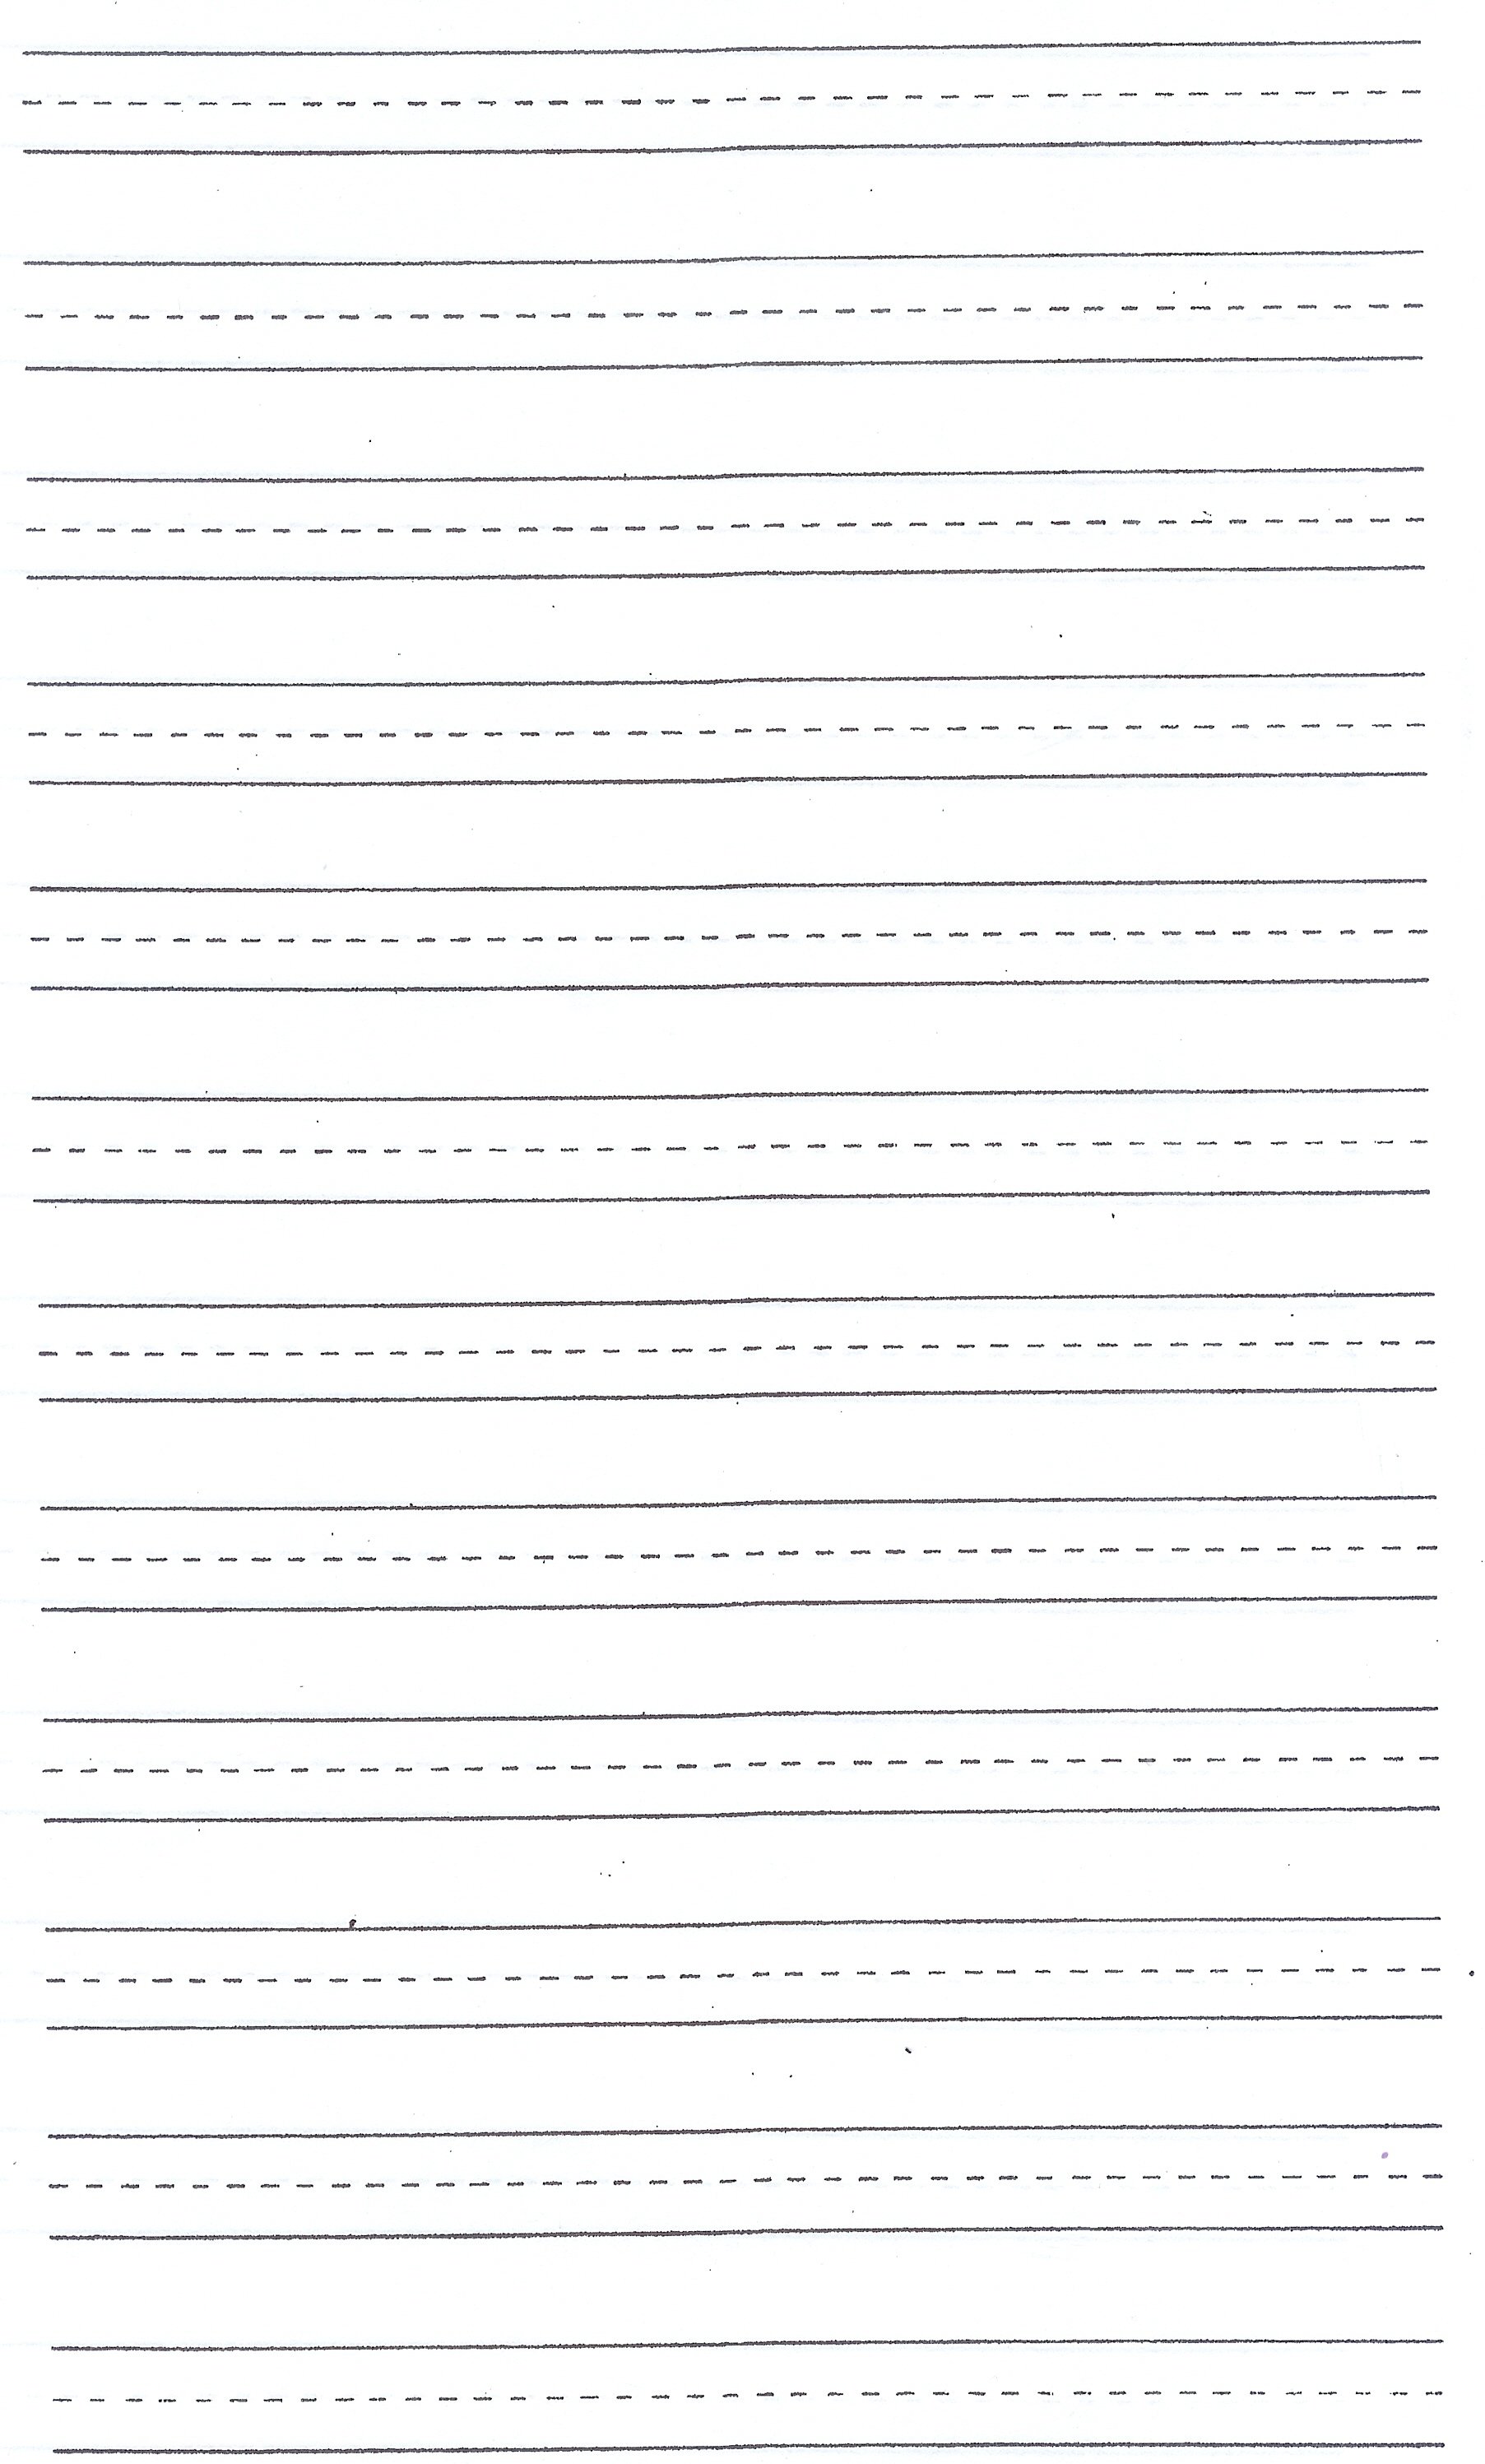 1st Grade Writing Printable Worksheet